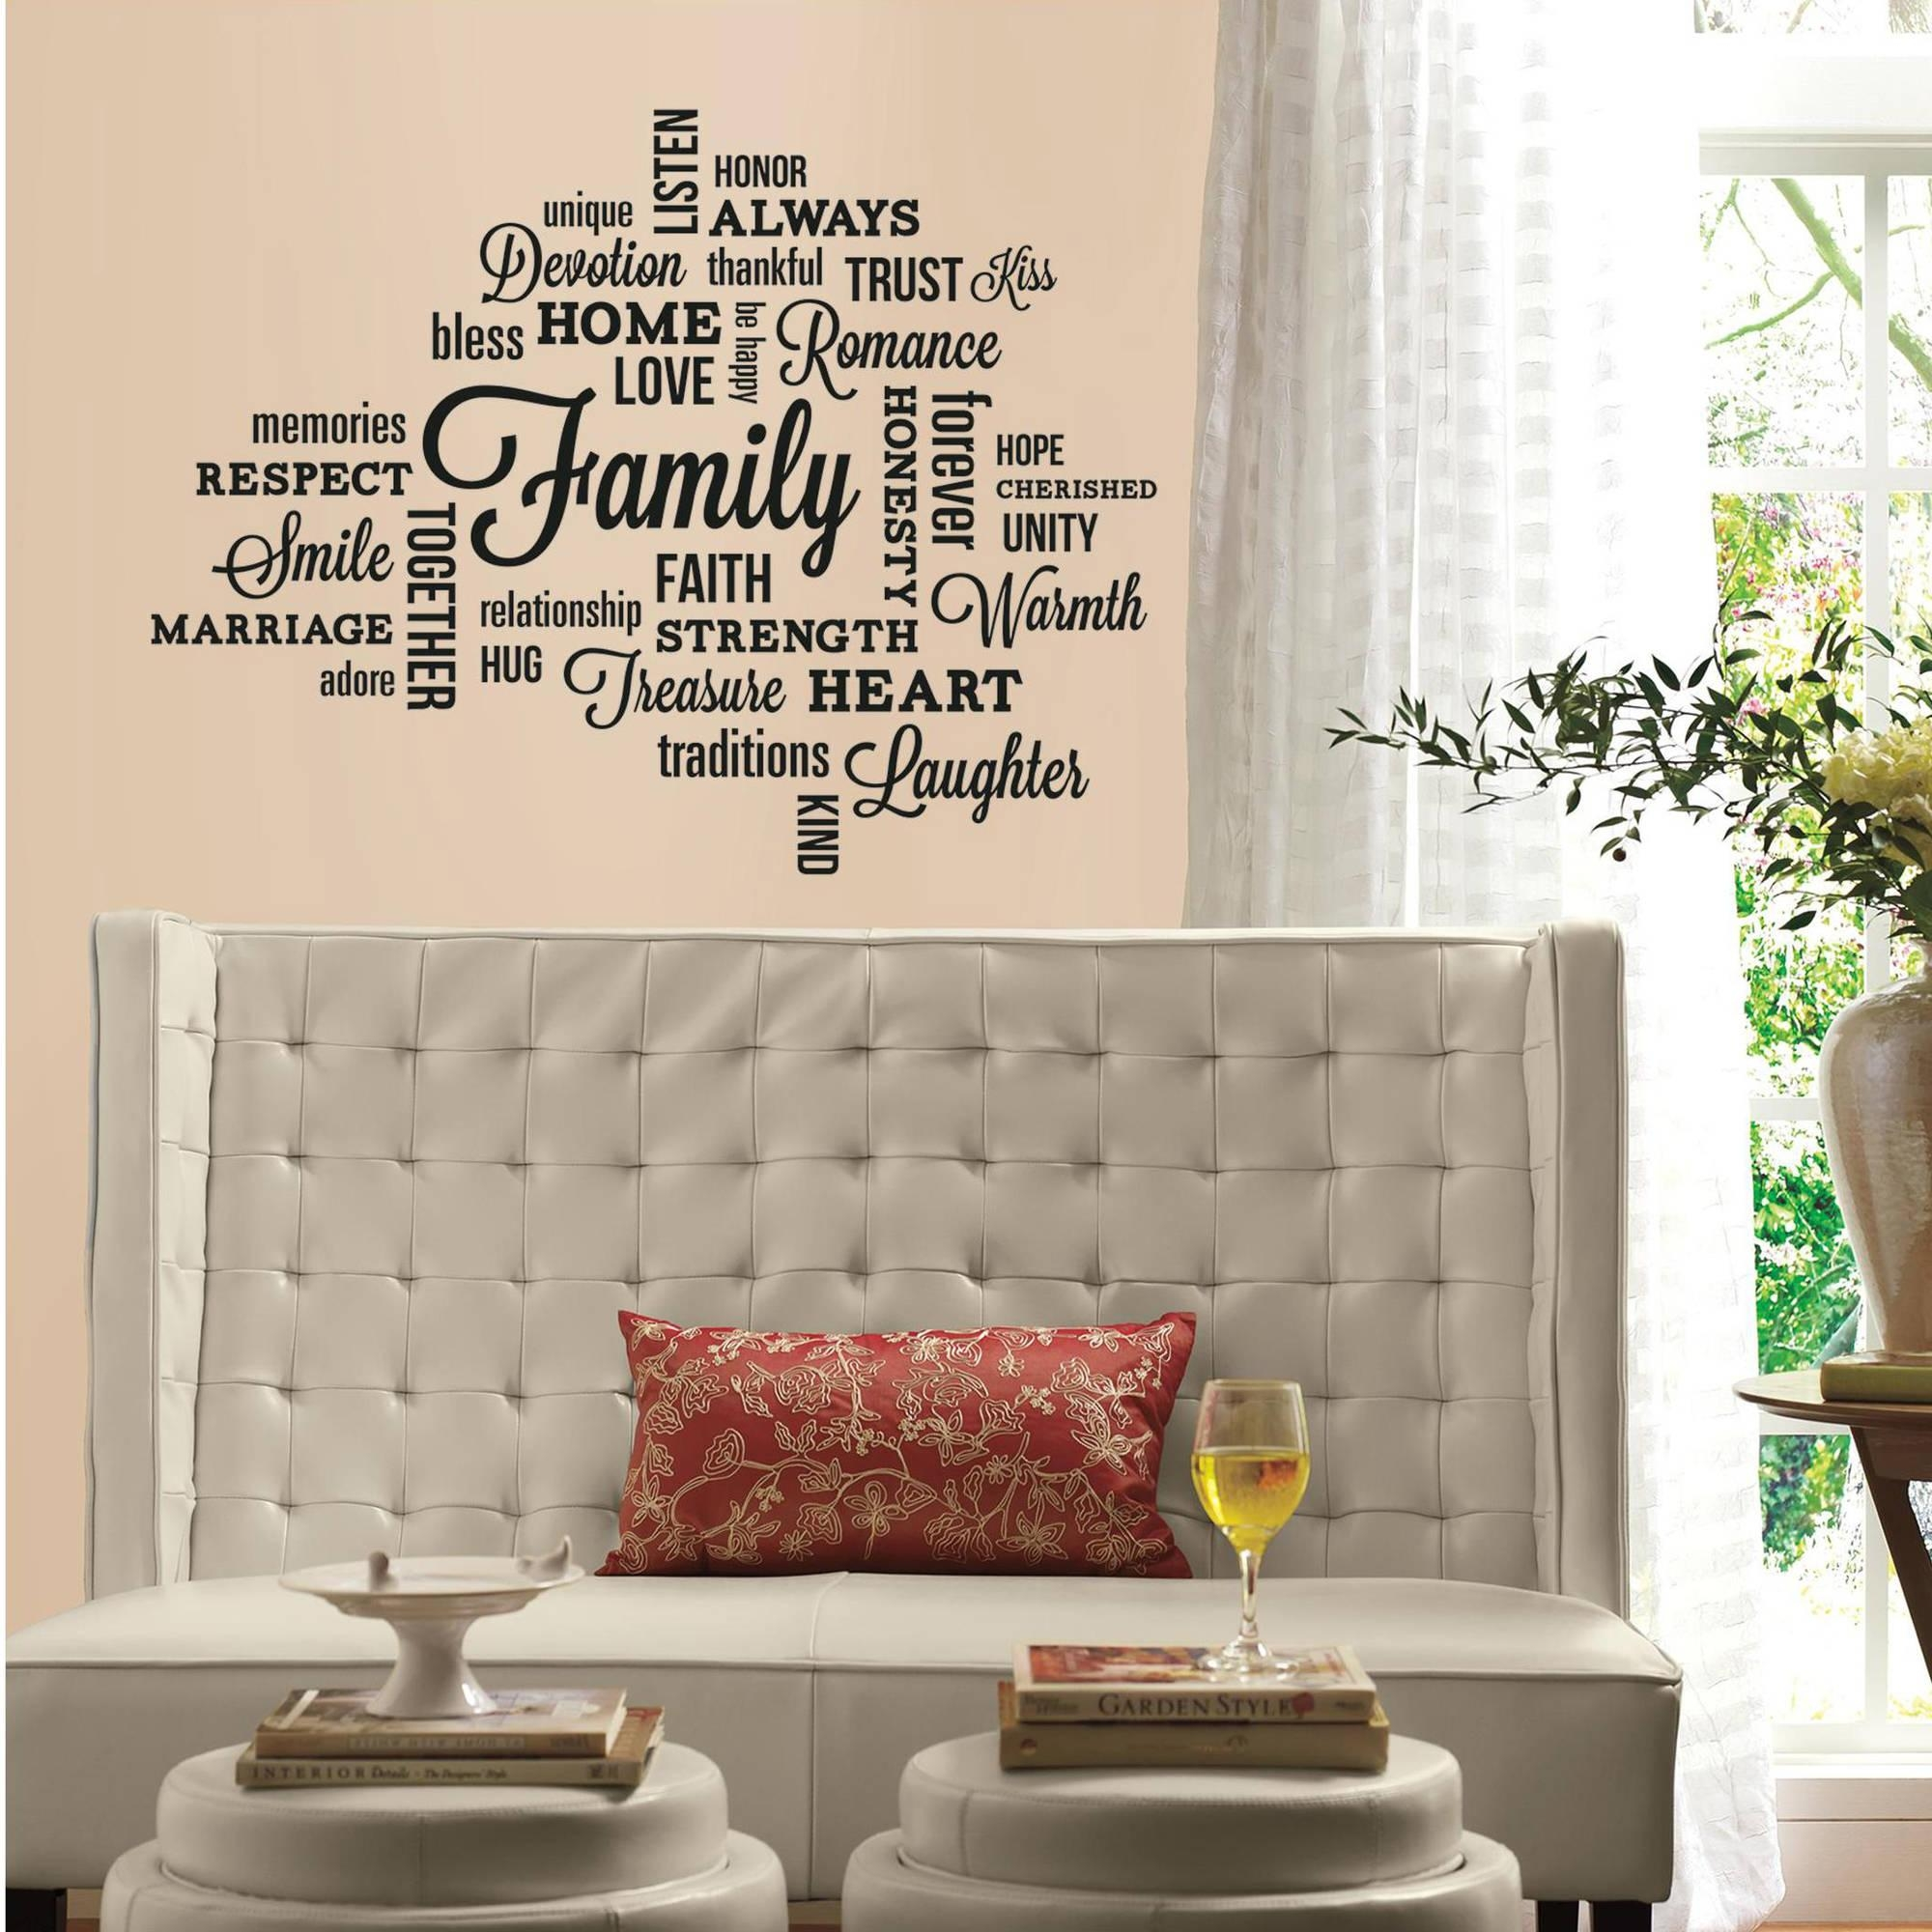 Family Quote Peel And Stick Wall Decals – Walmart In Wall Cling Art (Image 3 of 20)